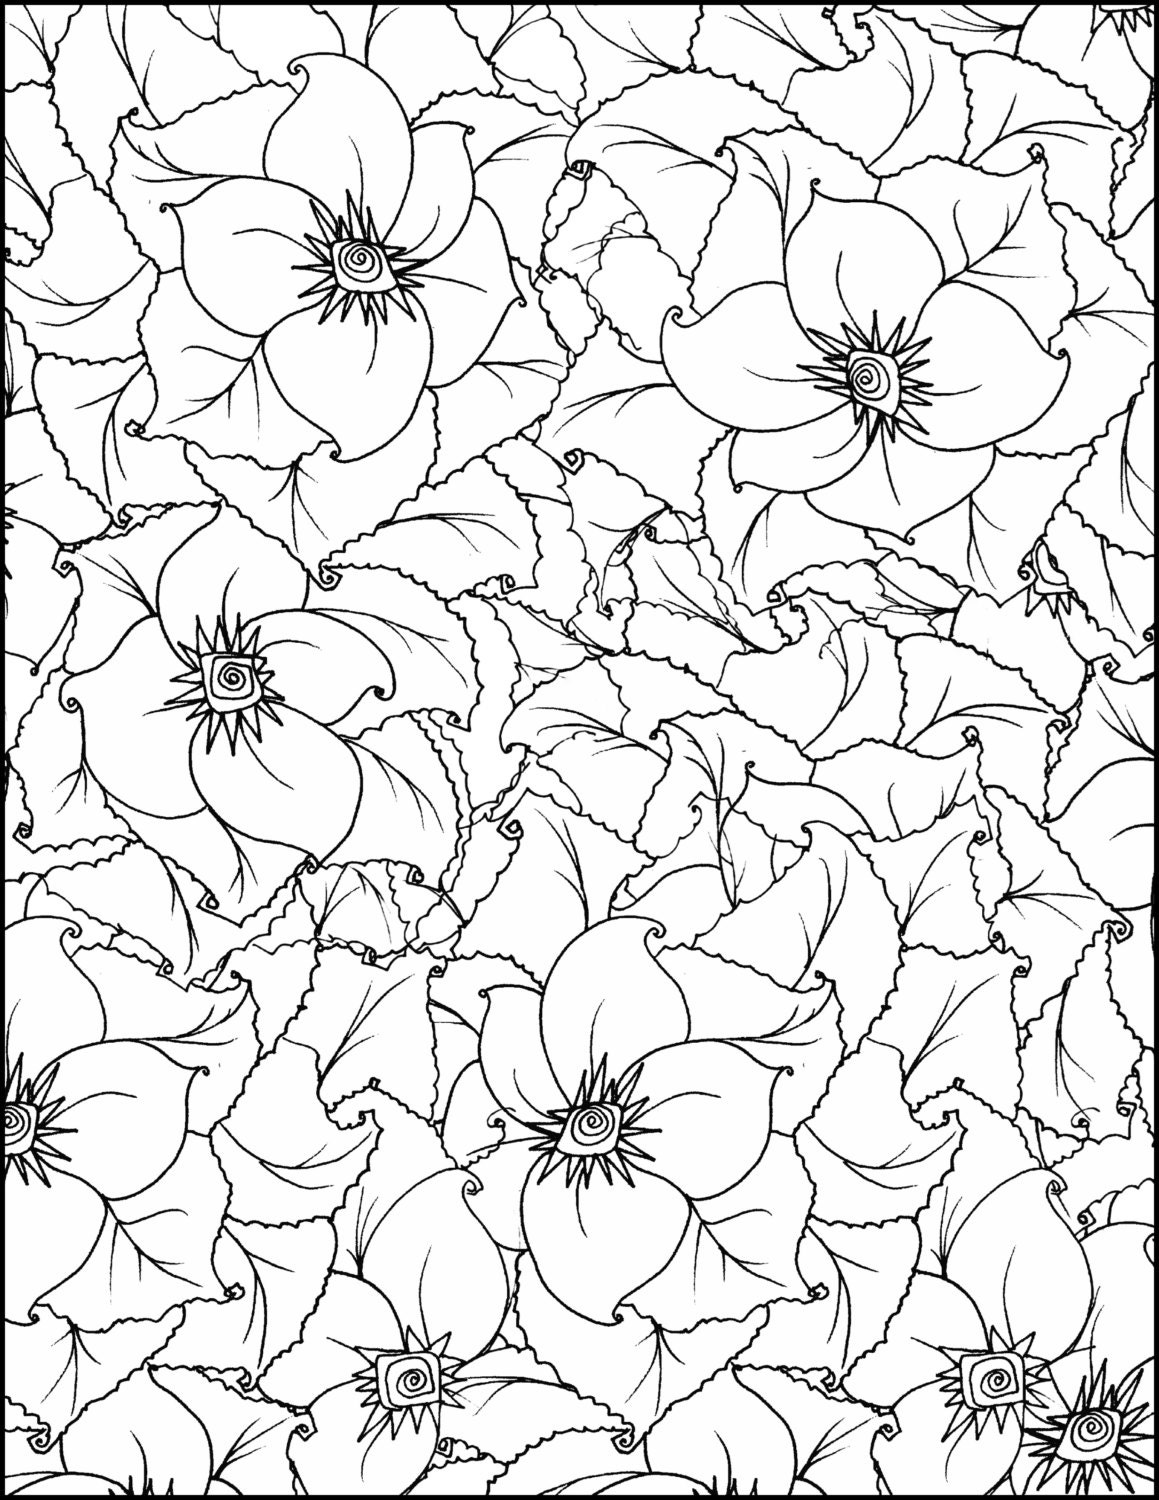 whimsical flower coloring pages - photo#15